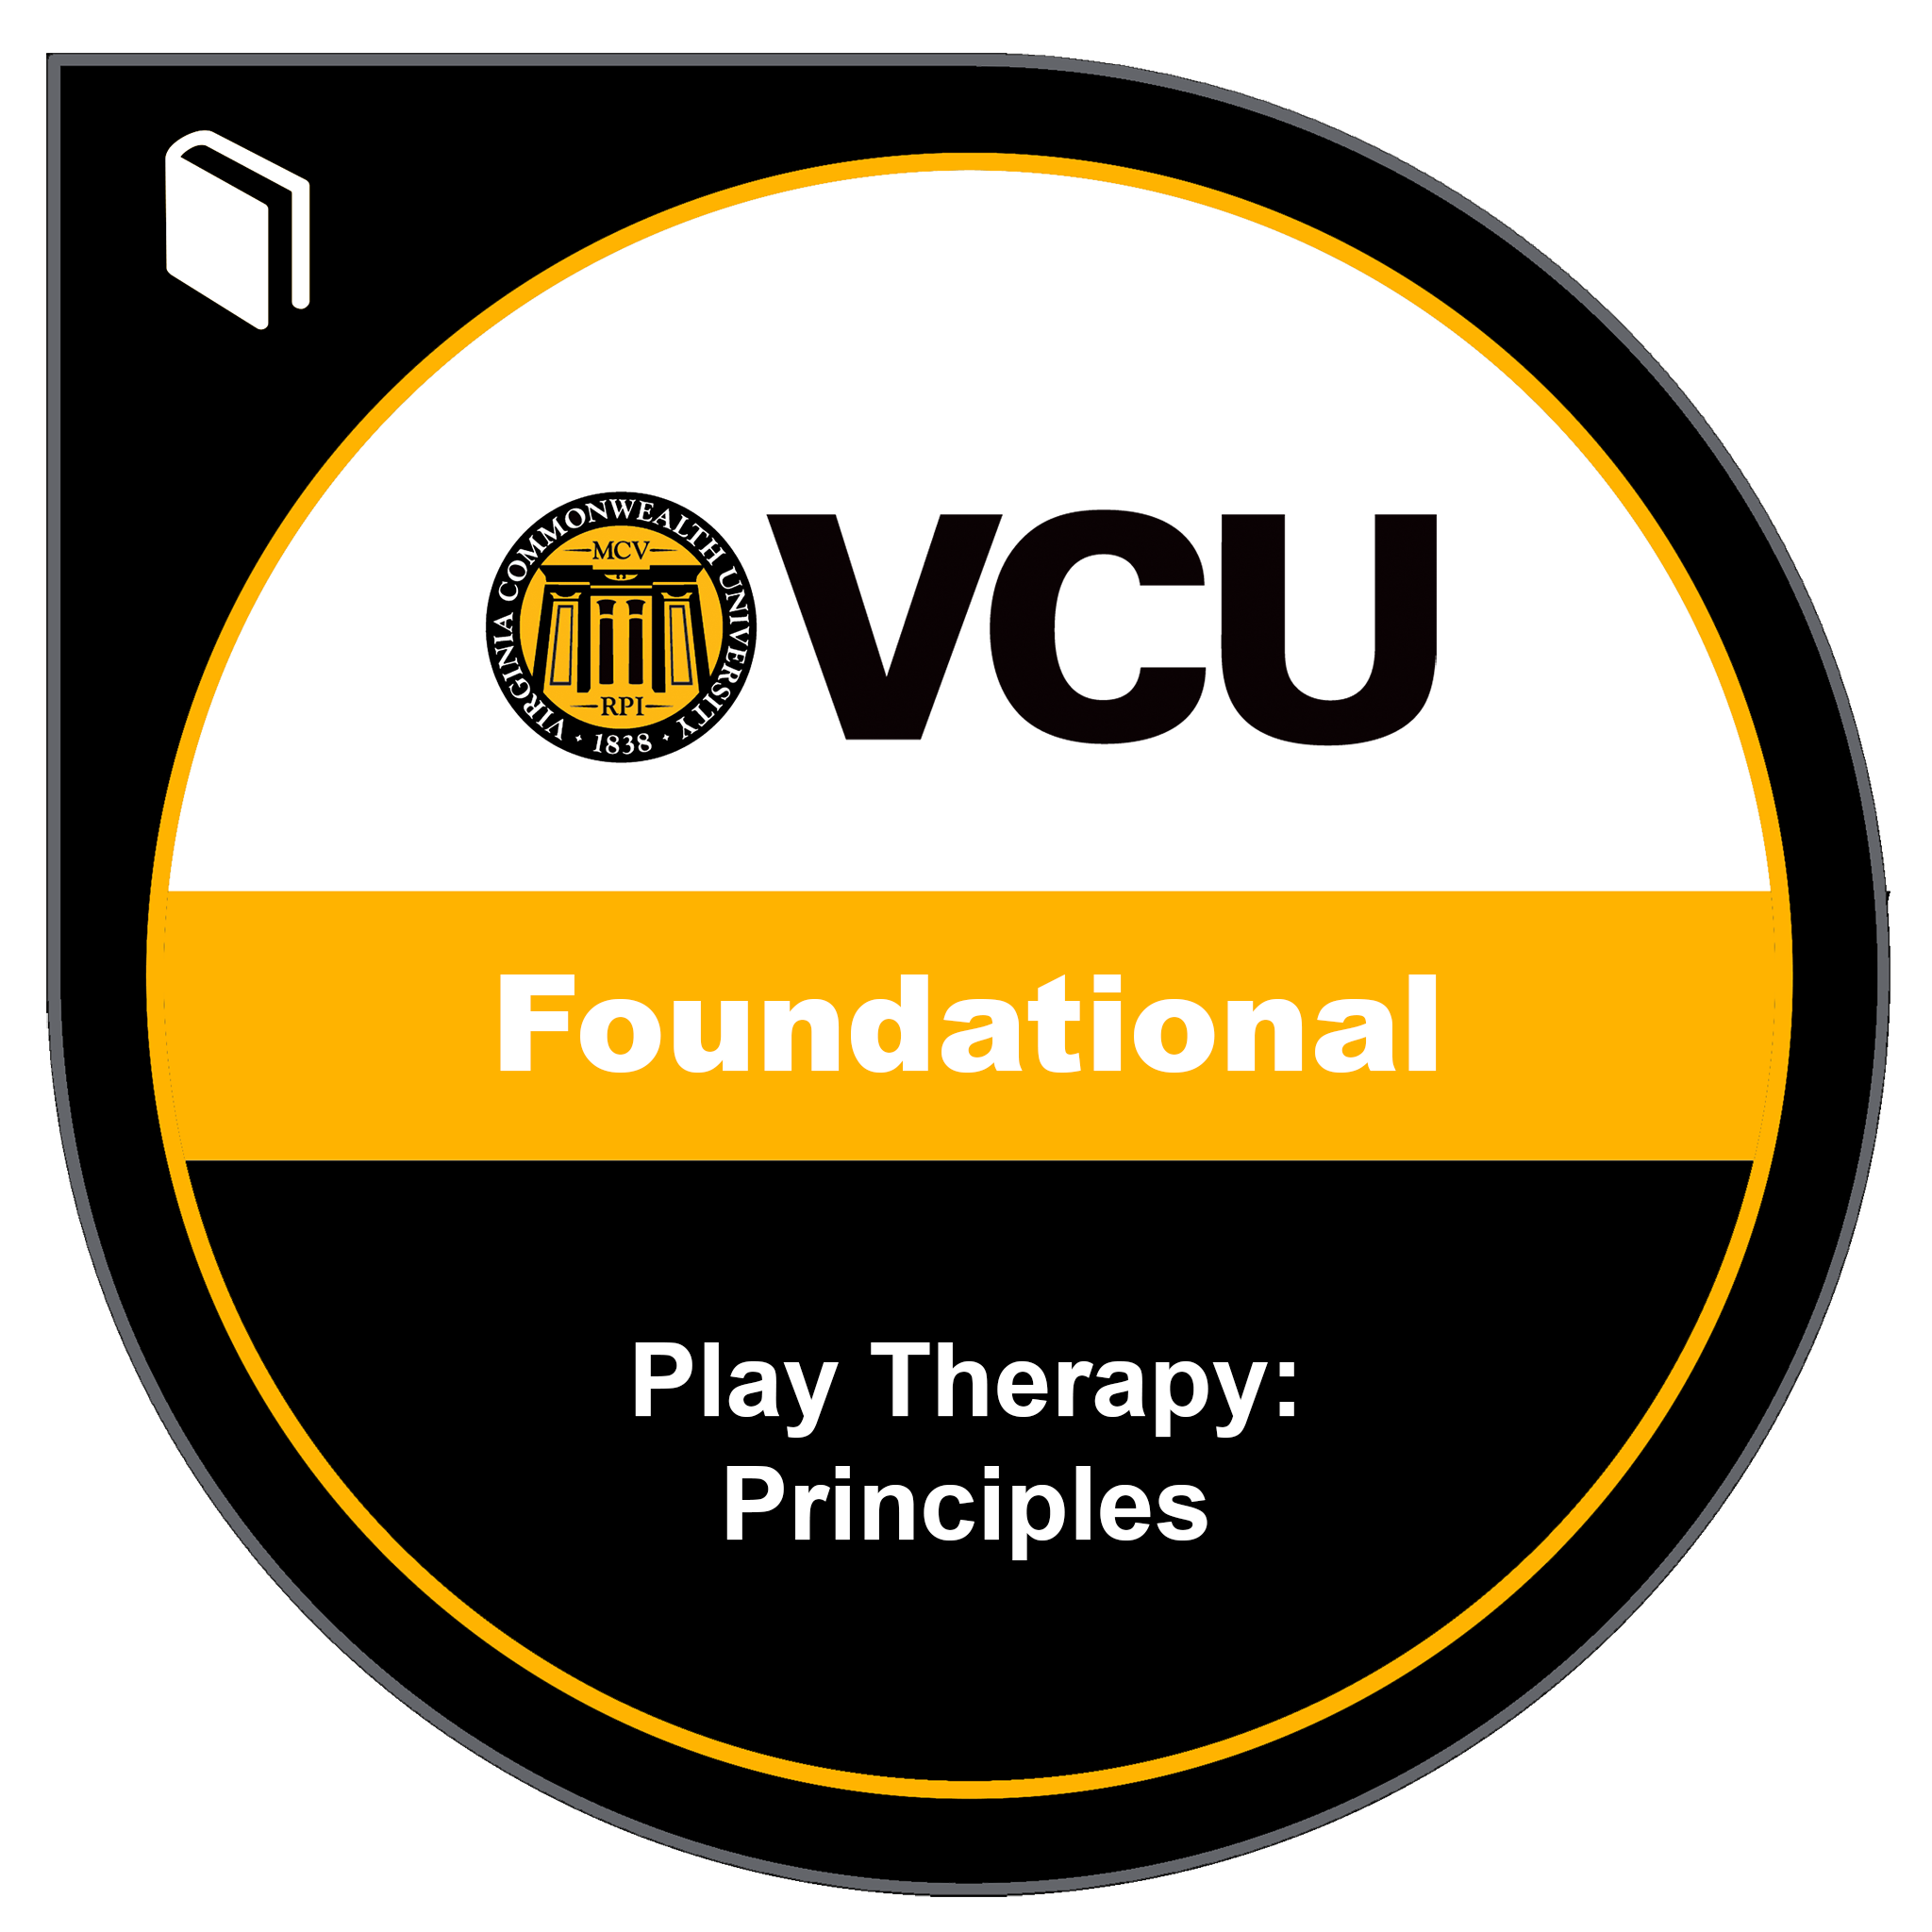 Play Therapy: Principles